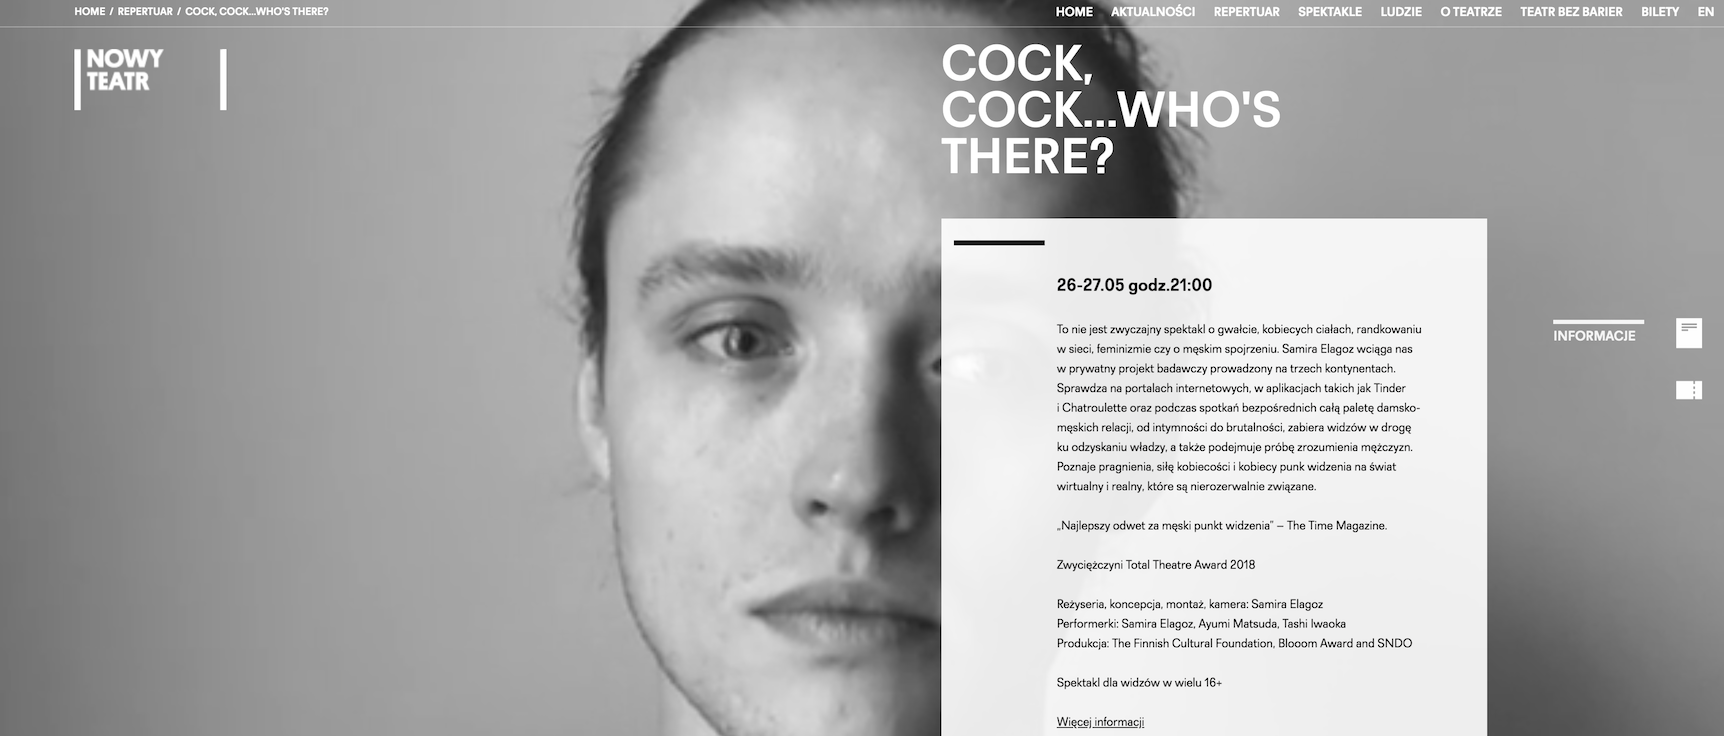 Cock, Cock.. Who's There? @ Nowy Teatr, Warsaw 26th + 27th of May